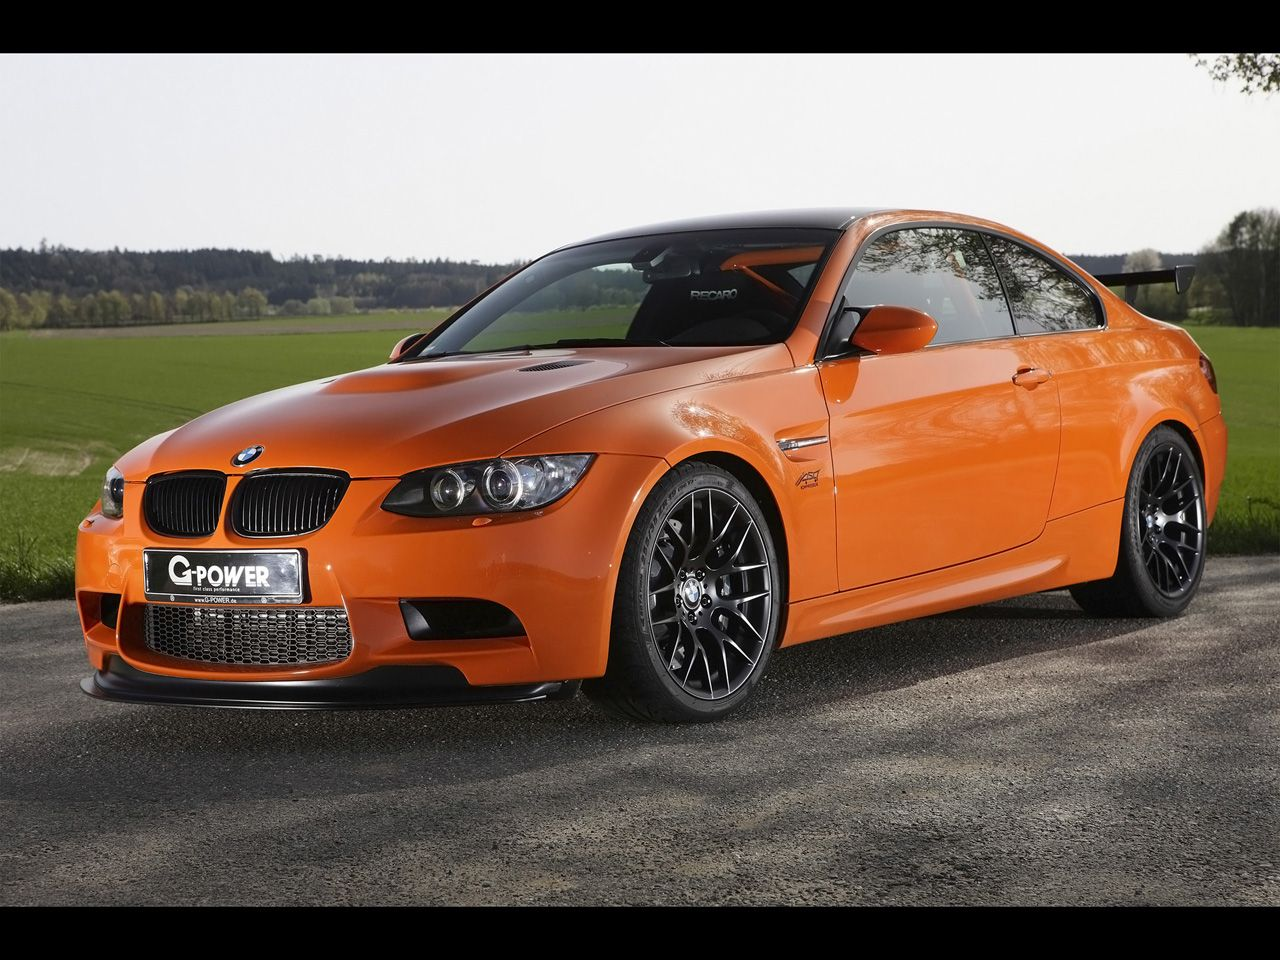 2011 g power bmw m3 gts